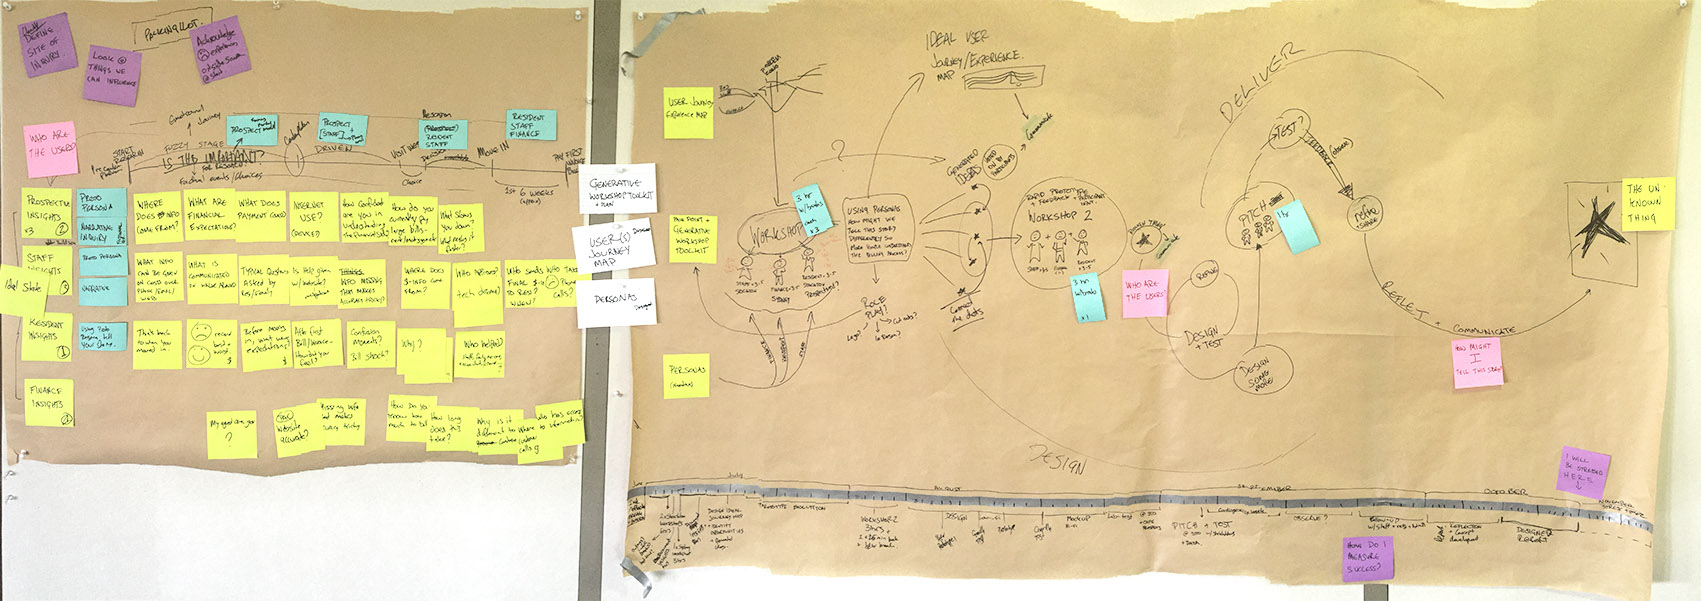 Mapping out more details